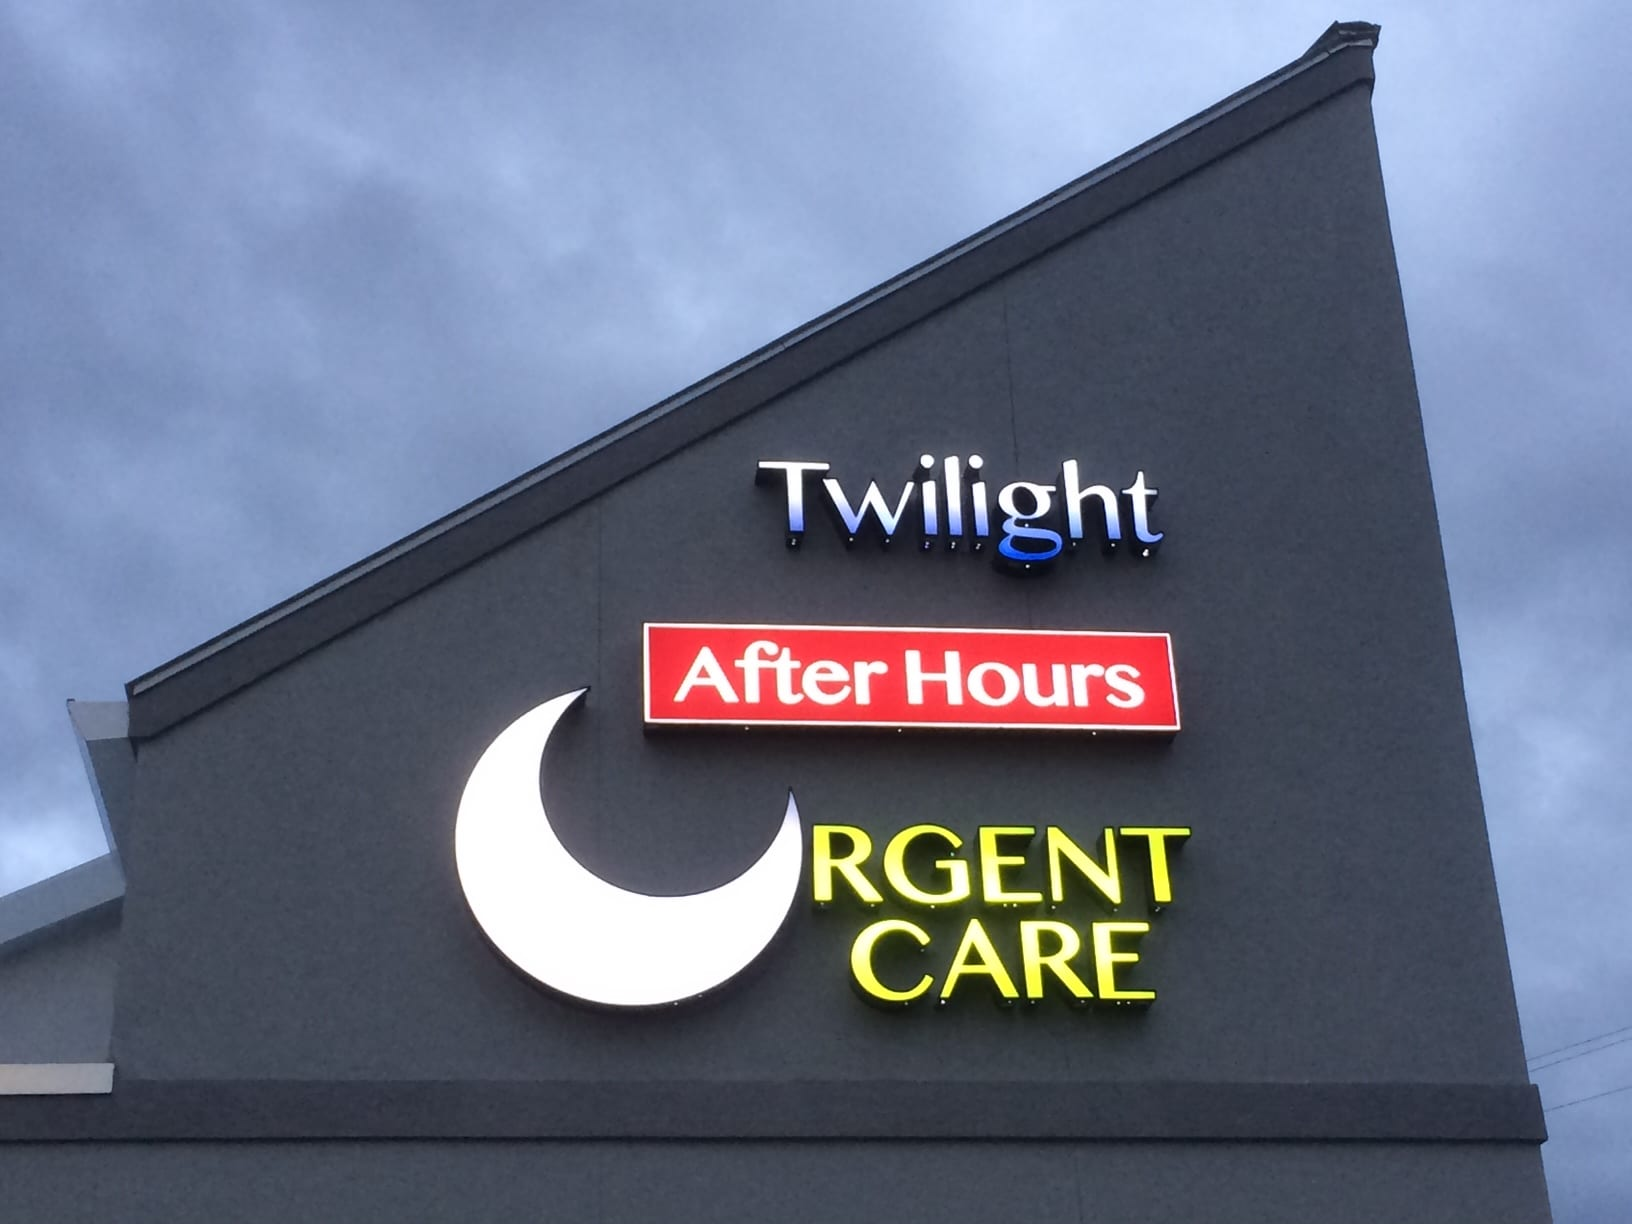 Twilight After Hours